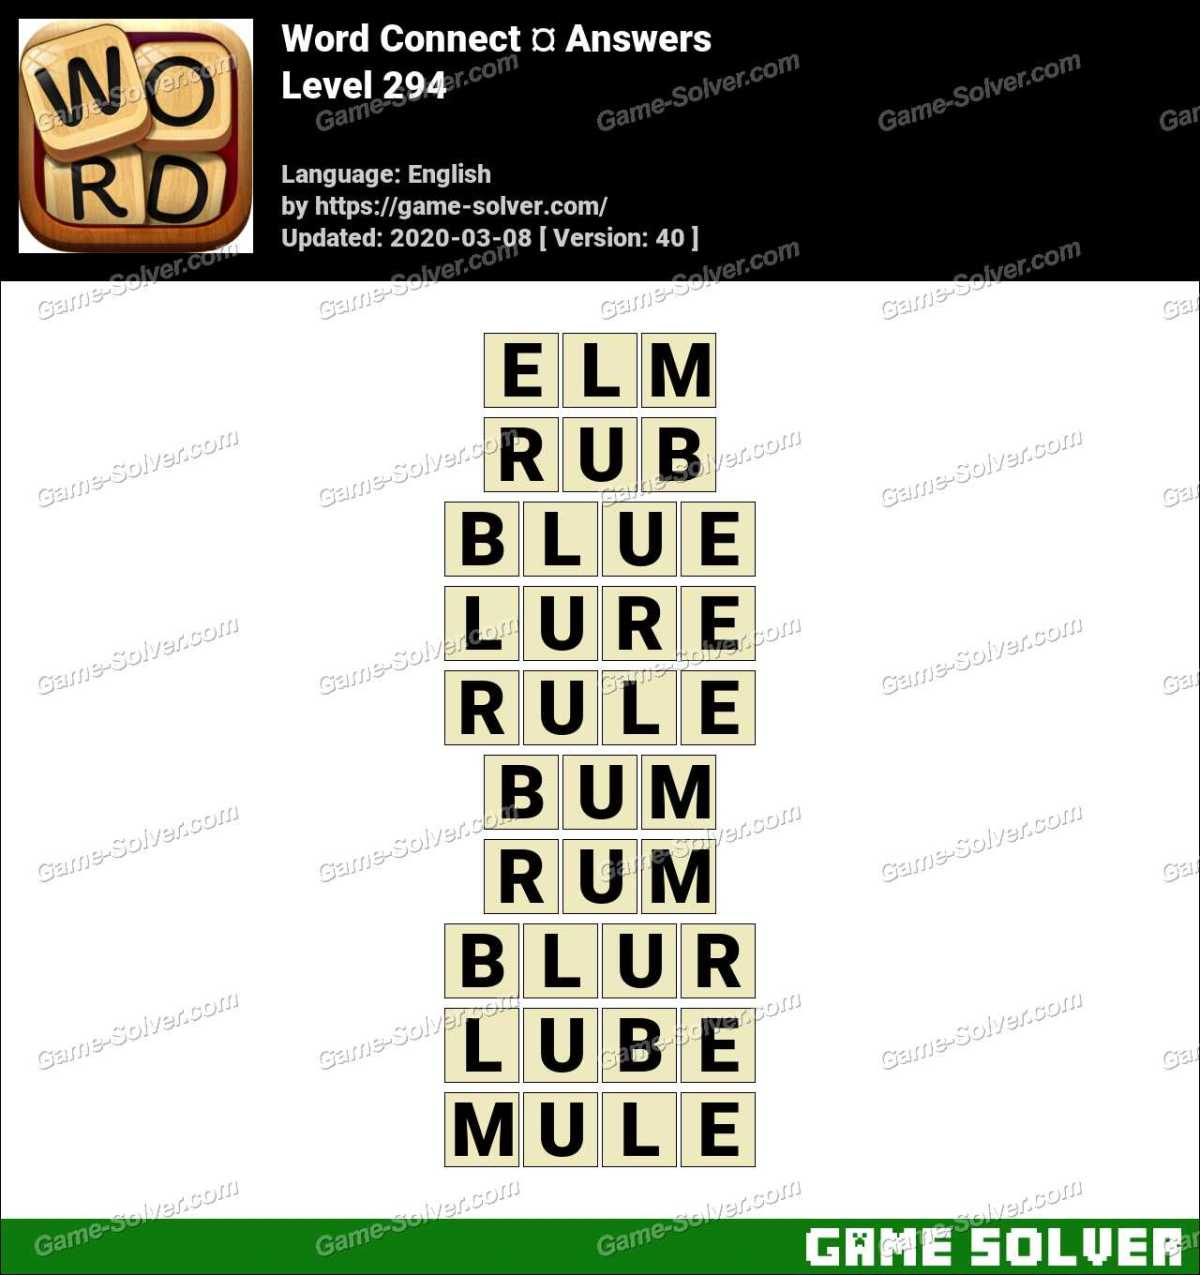 Word Connect Level 294 Answers